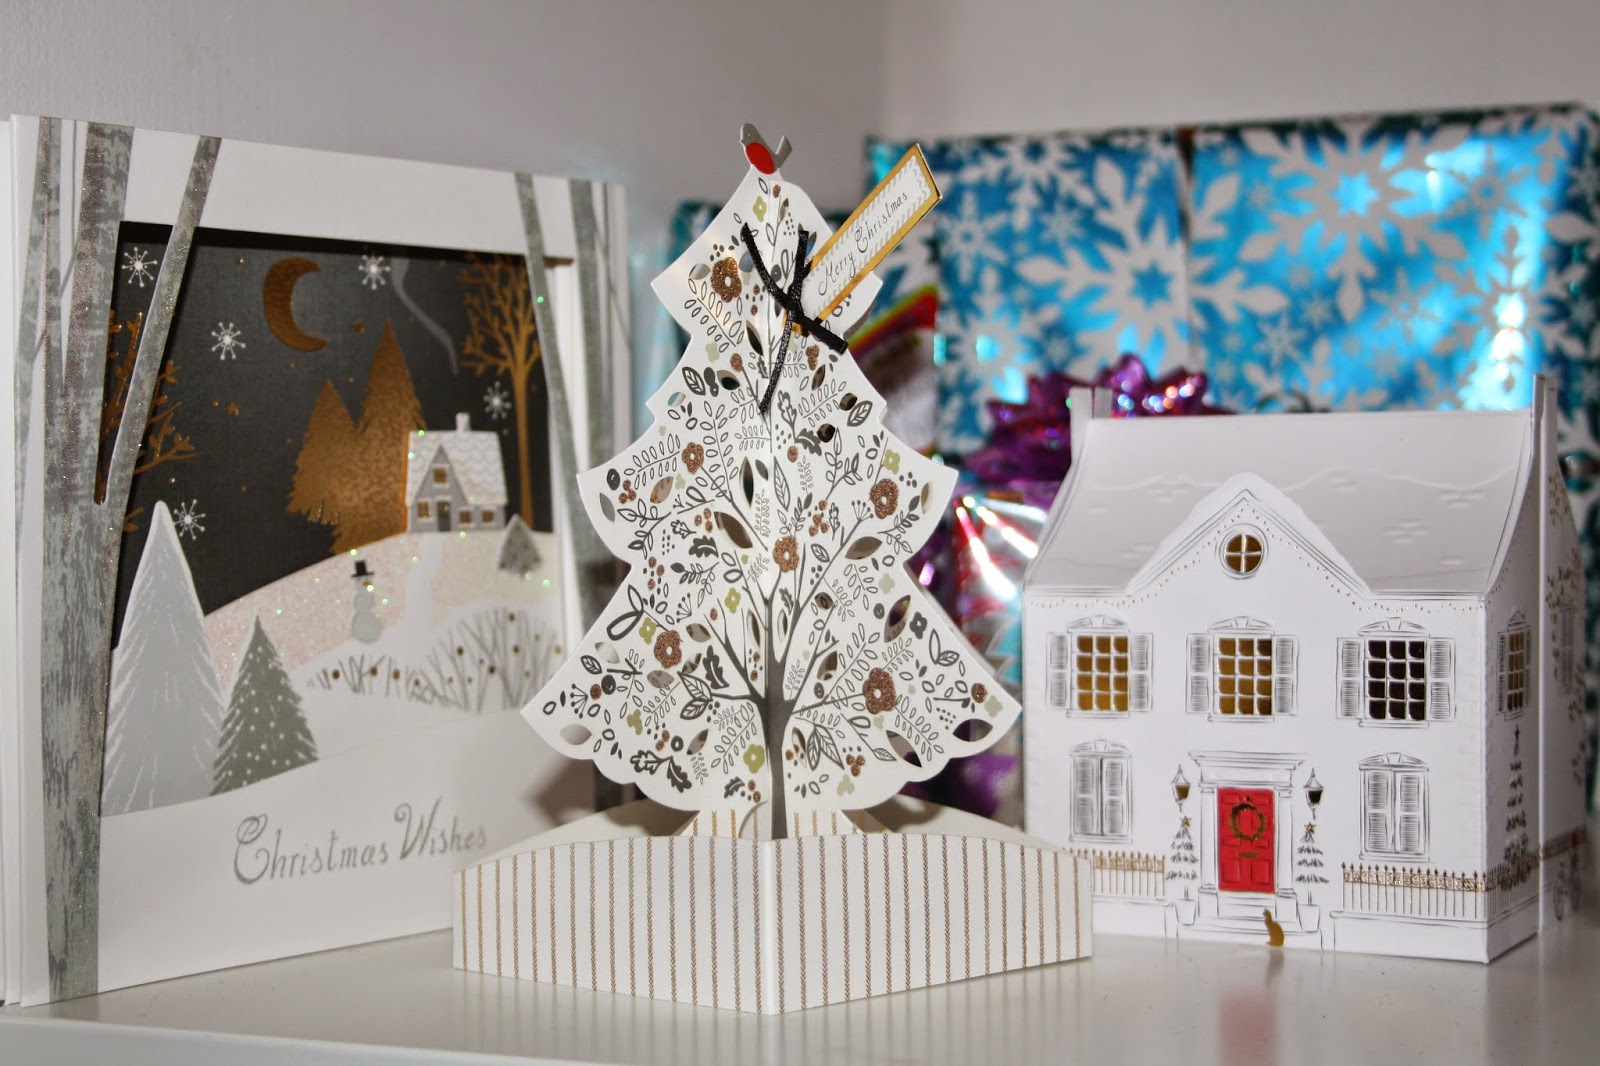 REVIEW: HALLMARK POP UP CHRISTMAS CARDS - PRETTY YOUNG THING